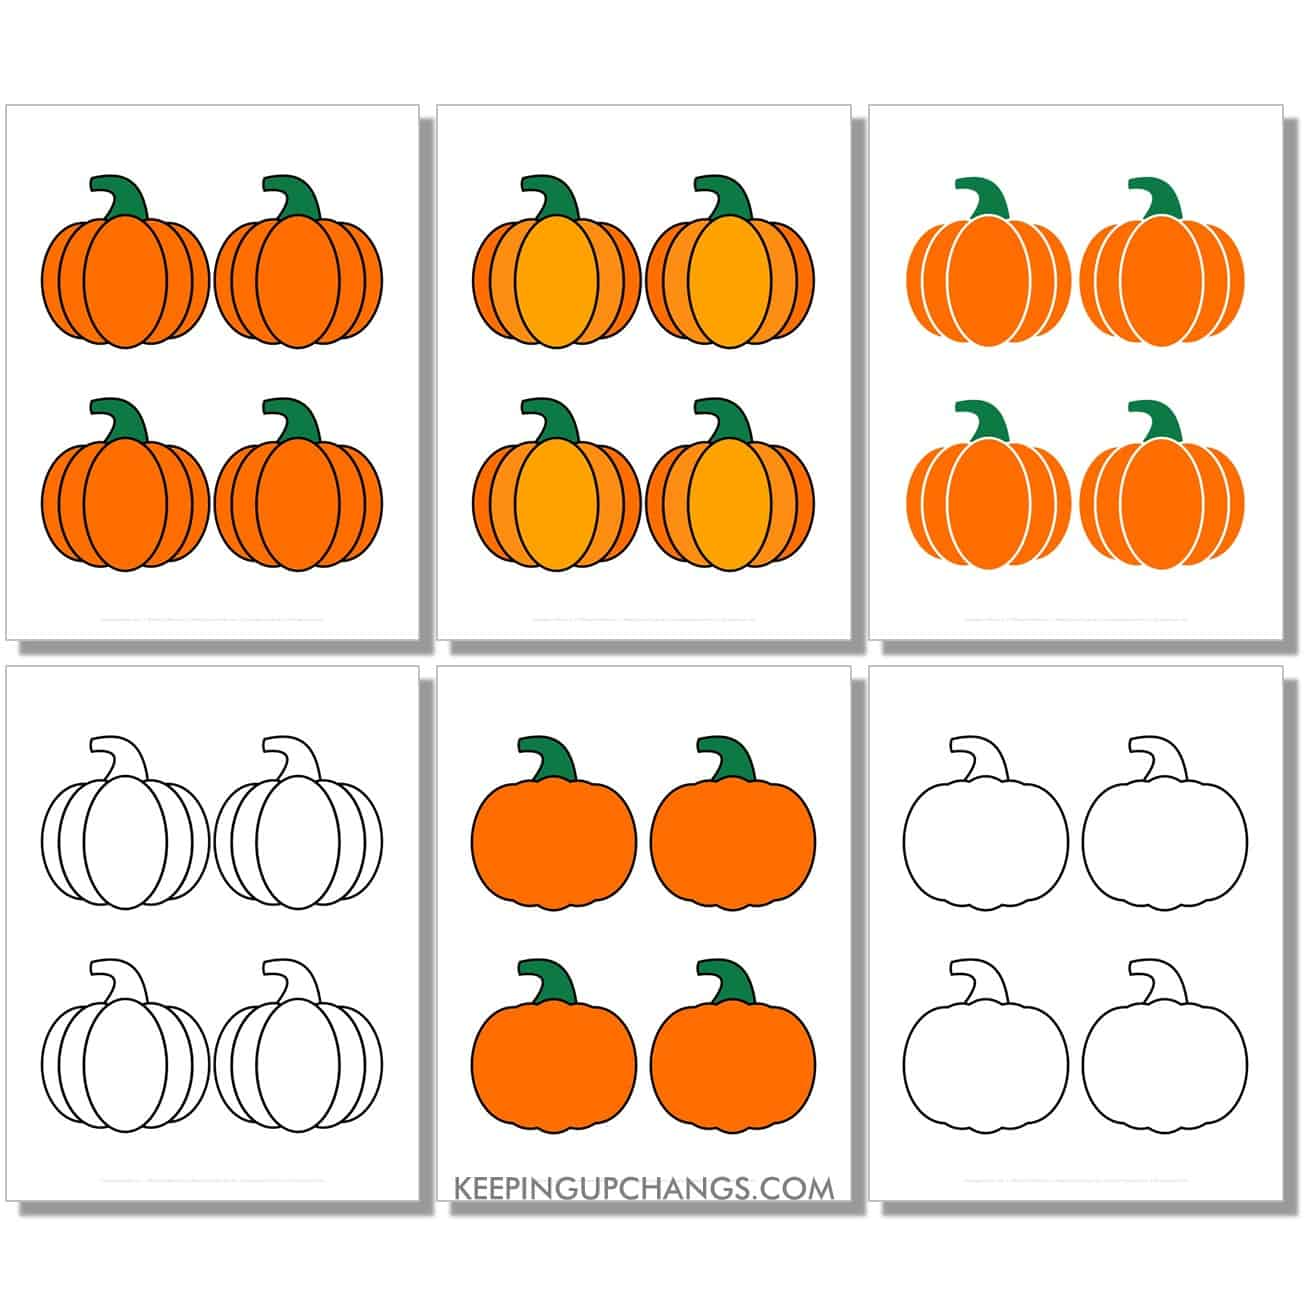 free small classic pumpkin in color, black and white, silhouette, 4 to a page.